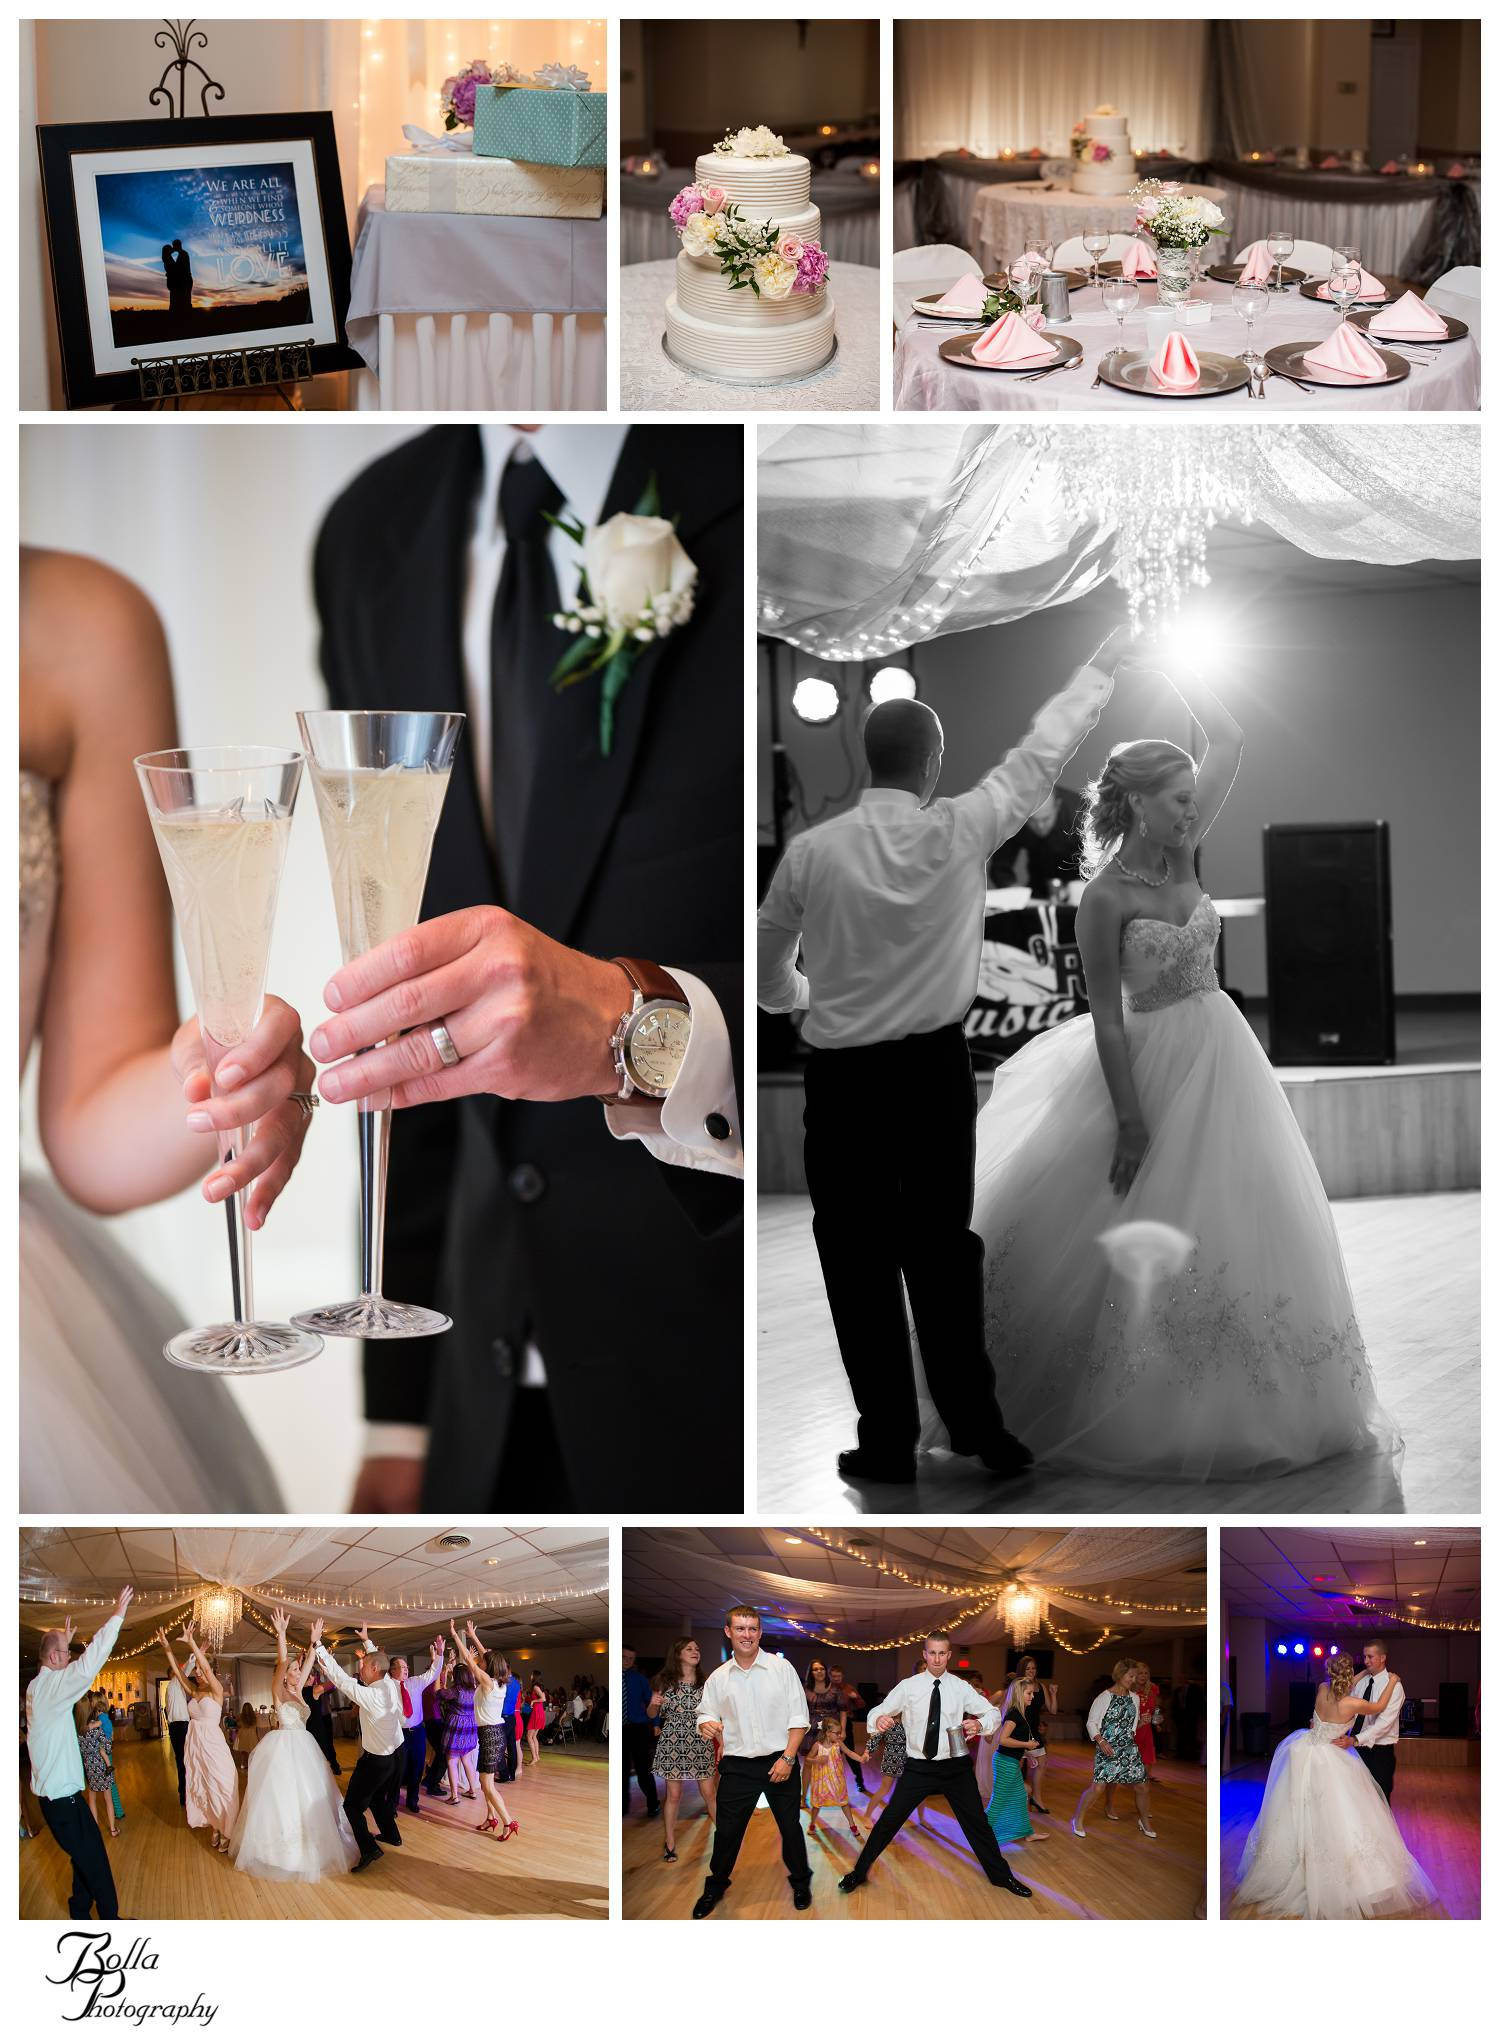 Bolla-photography-saint-louis-wedding-clinton-county-breese-il-6